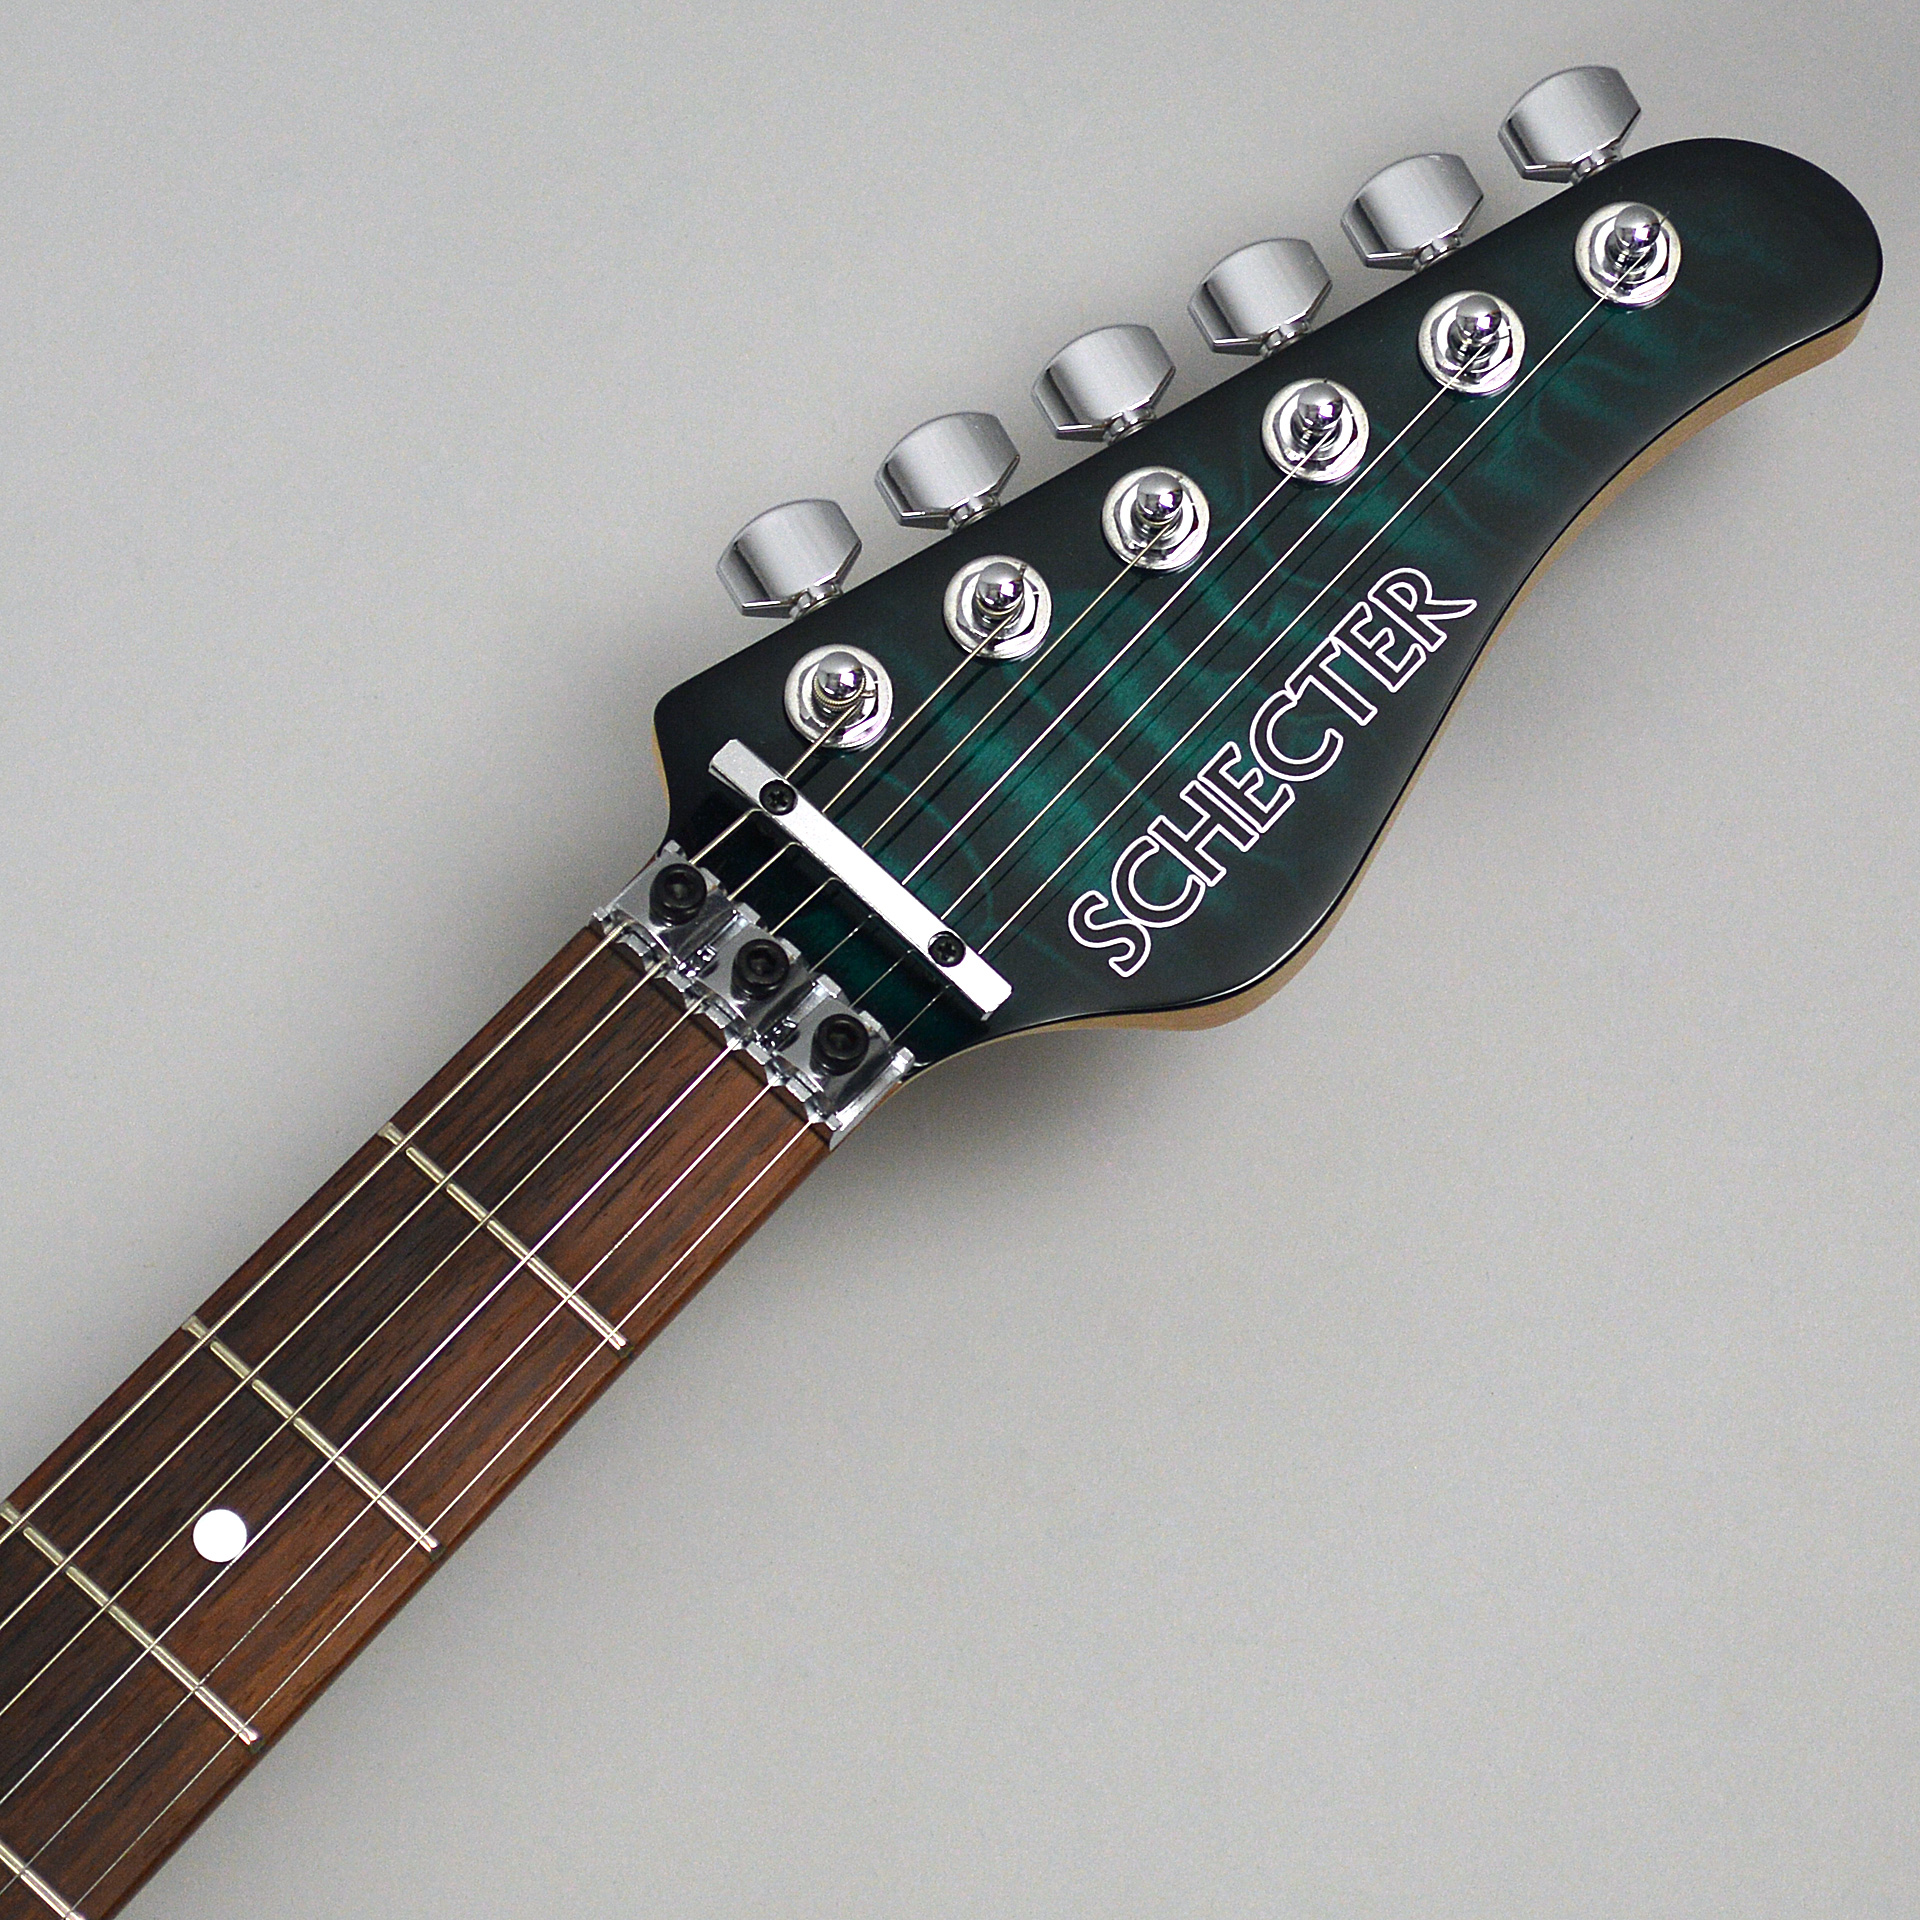 NV-DX-24-AS/GRSB/Rのヘッド画像